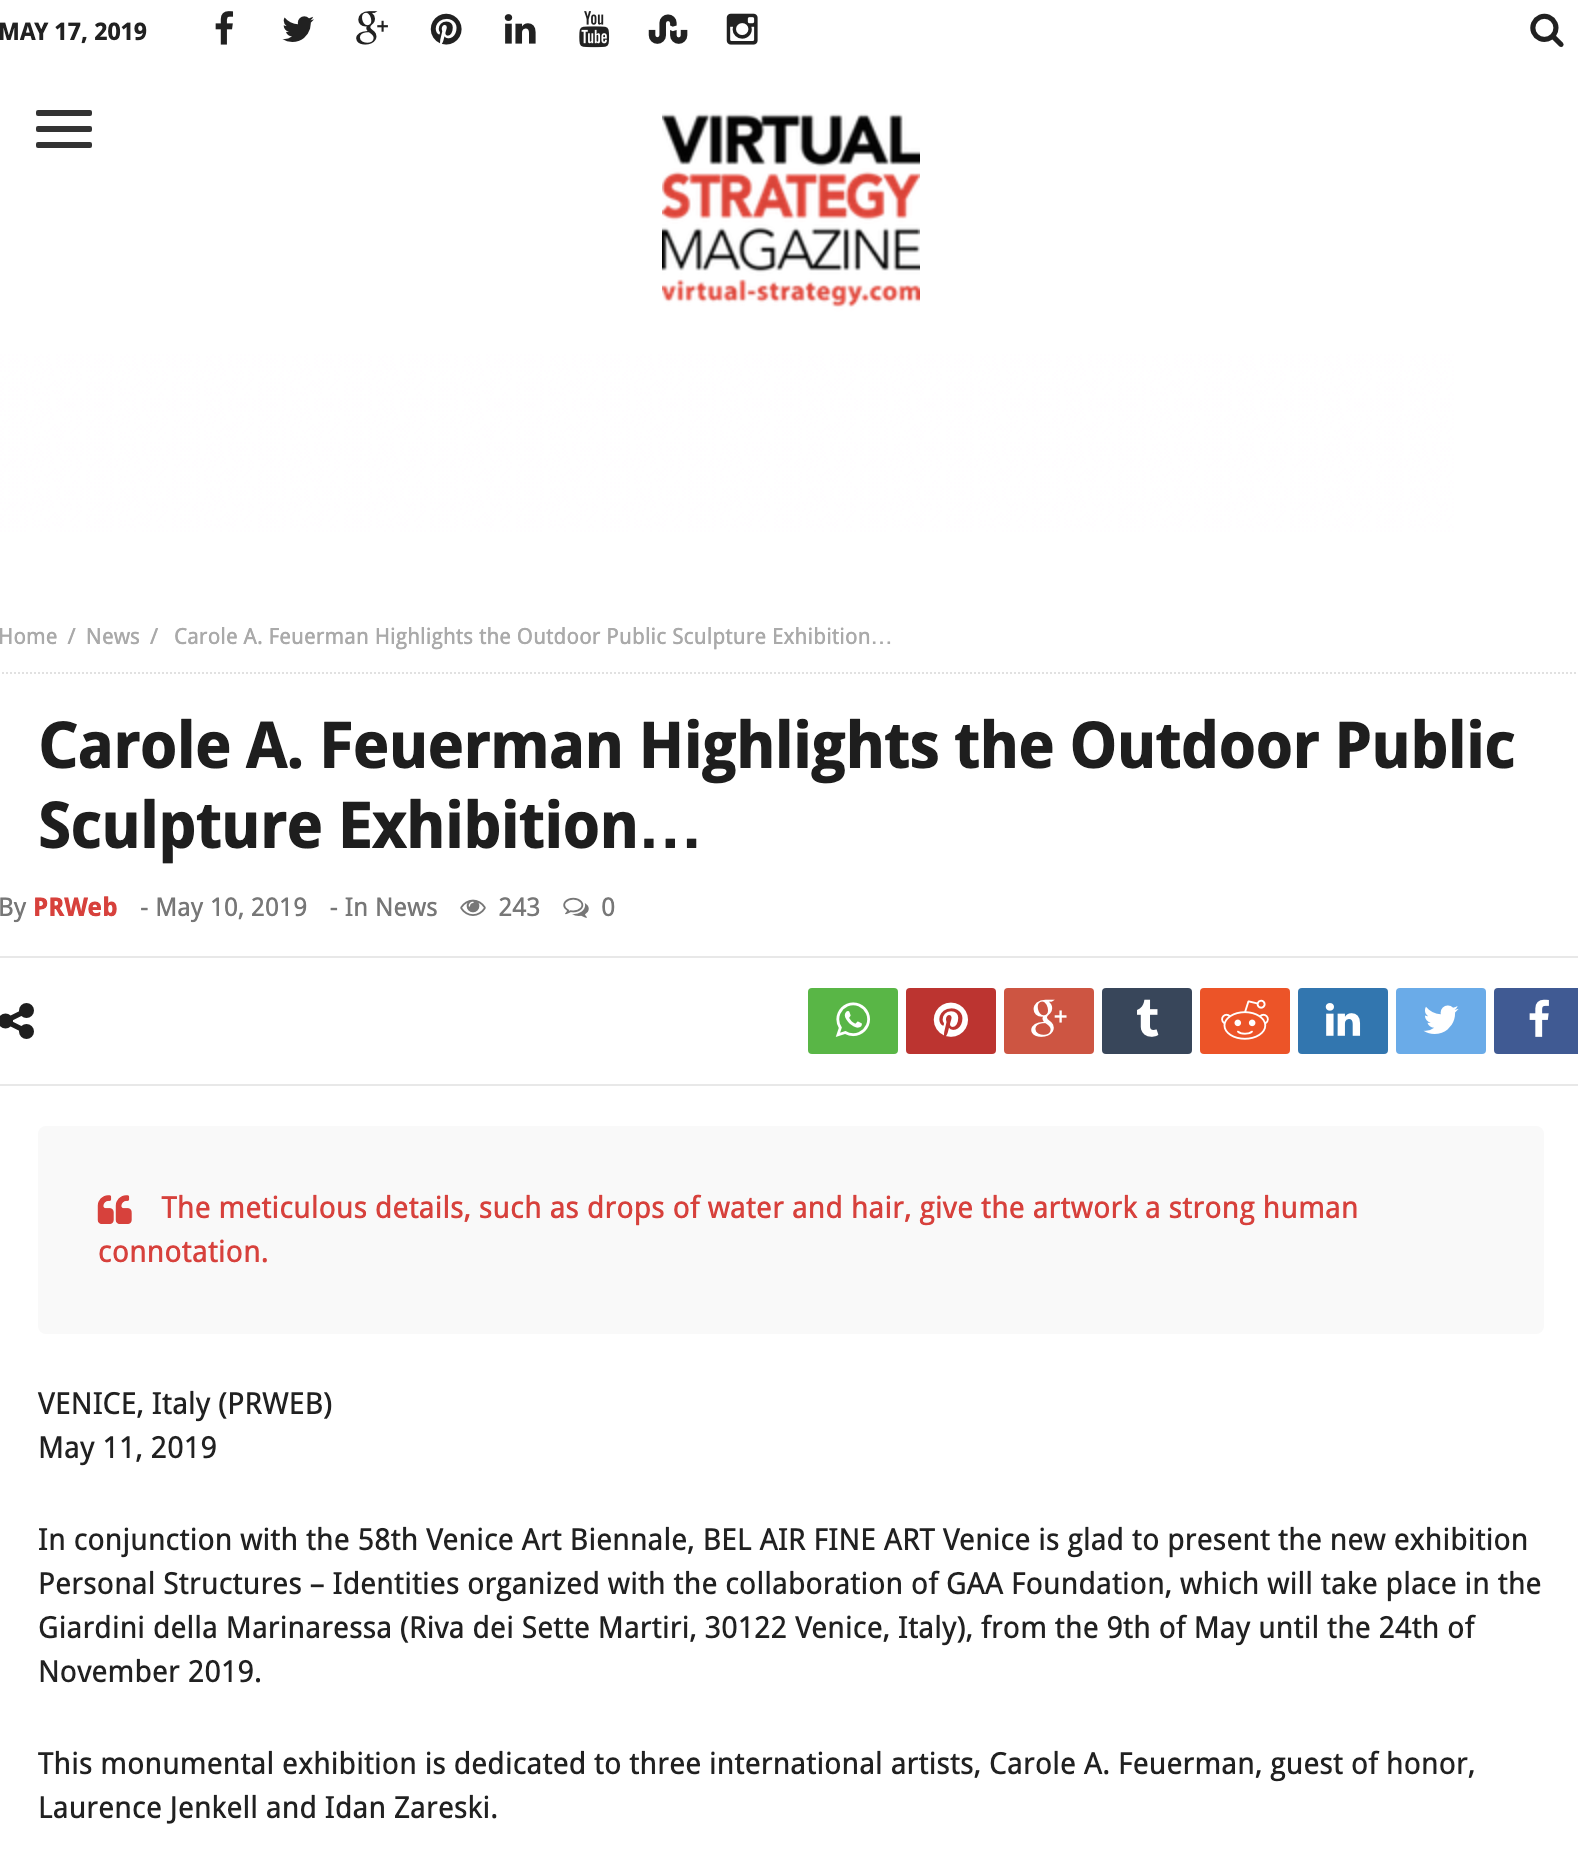 Carole A. Feuerman Highlights the Outdoor Public Sculpture Exhibition